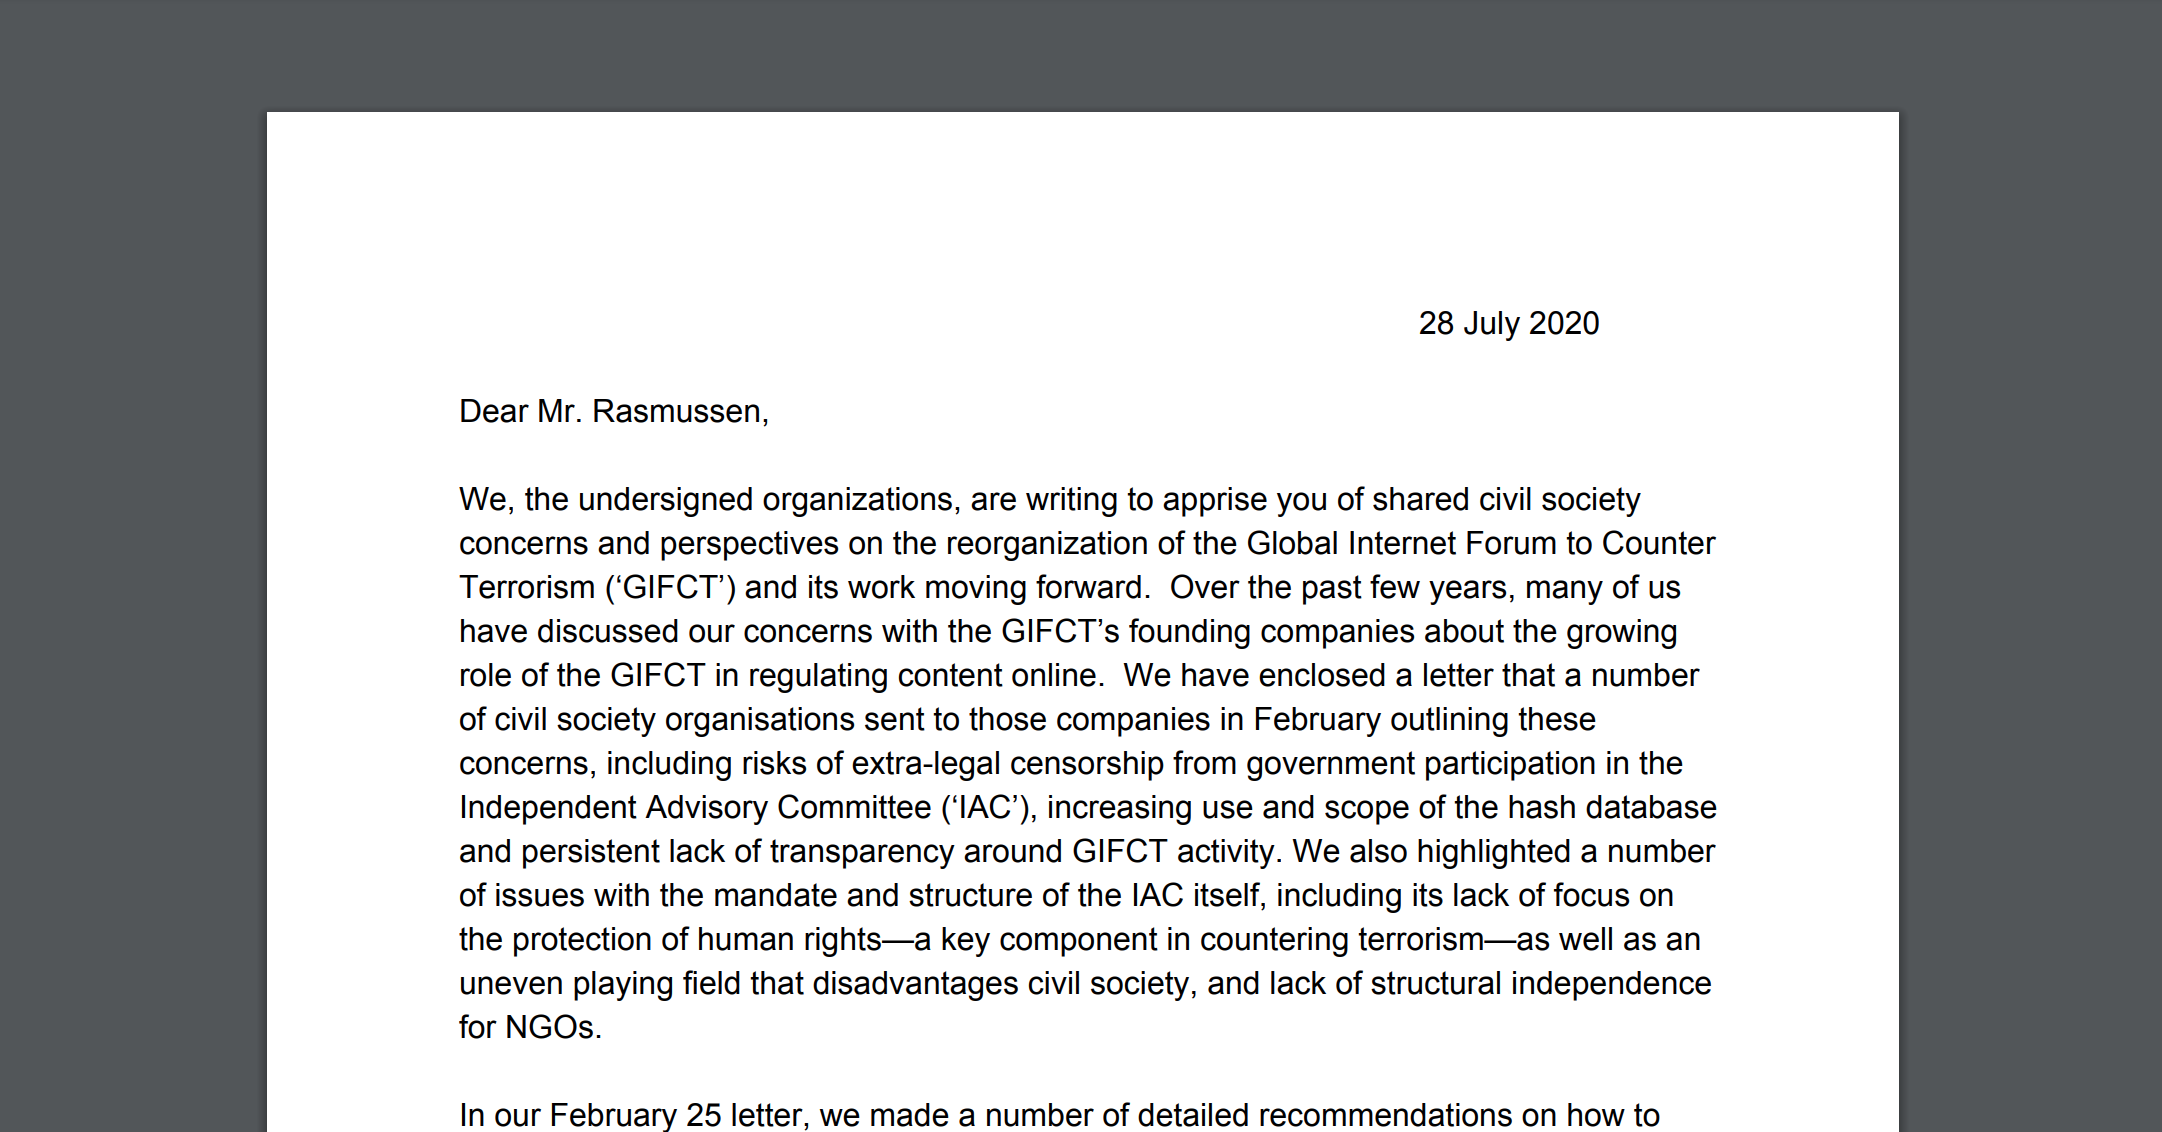 Human Rights NGOs in Coalition Letter to GIFCT